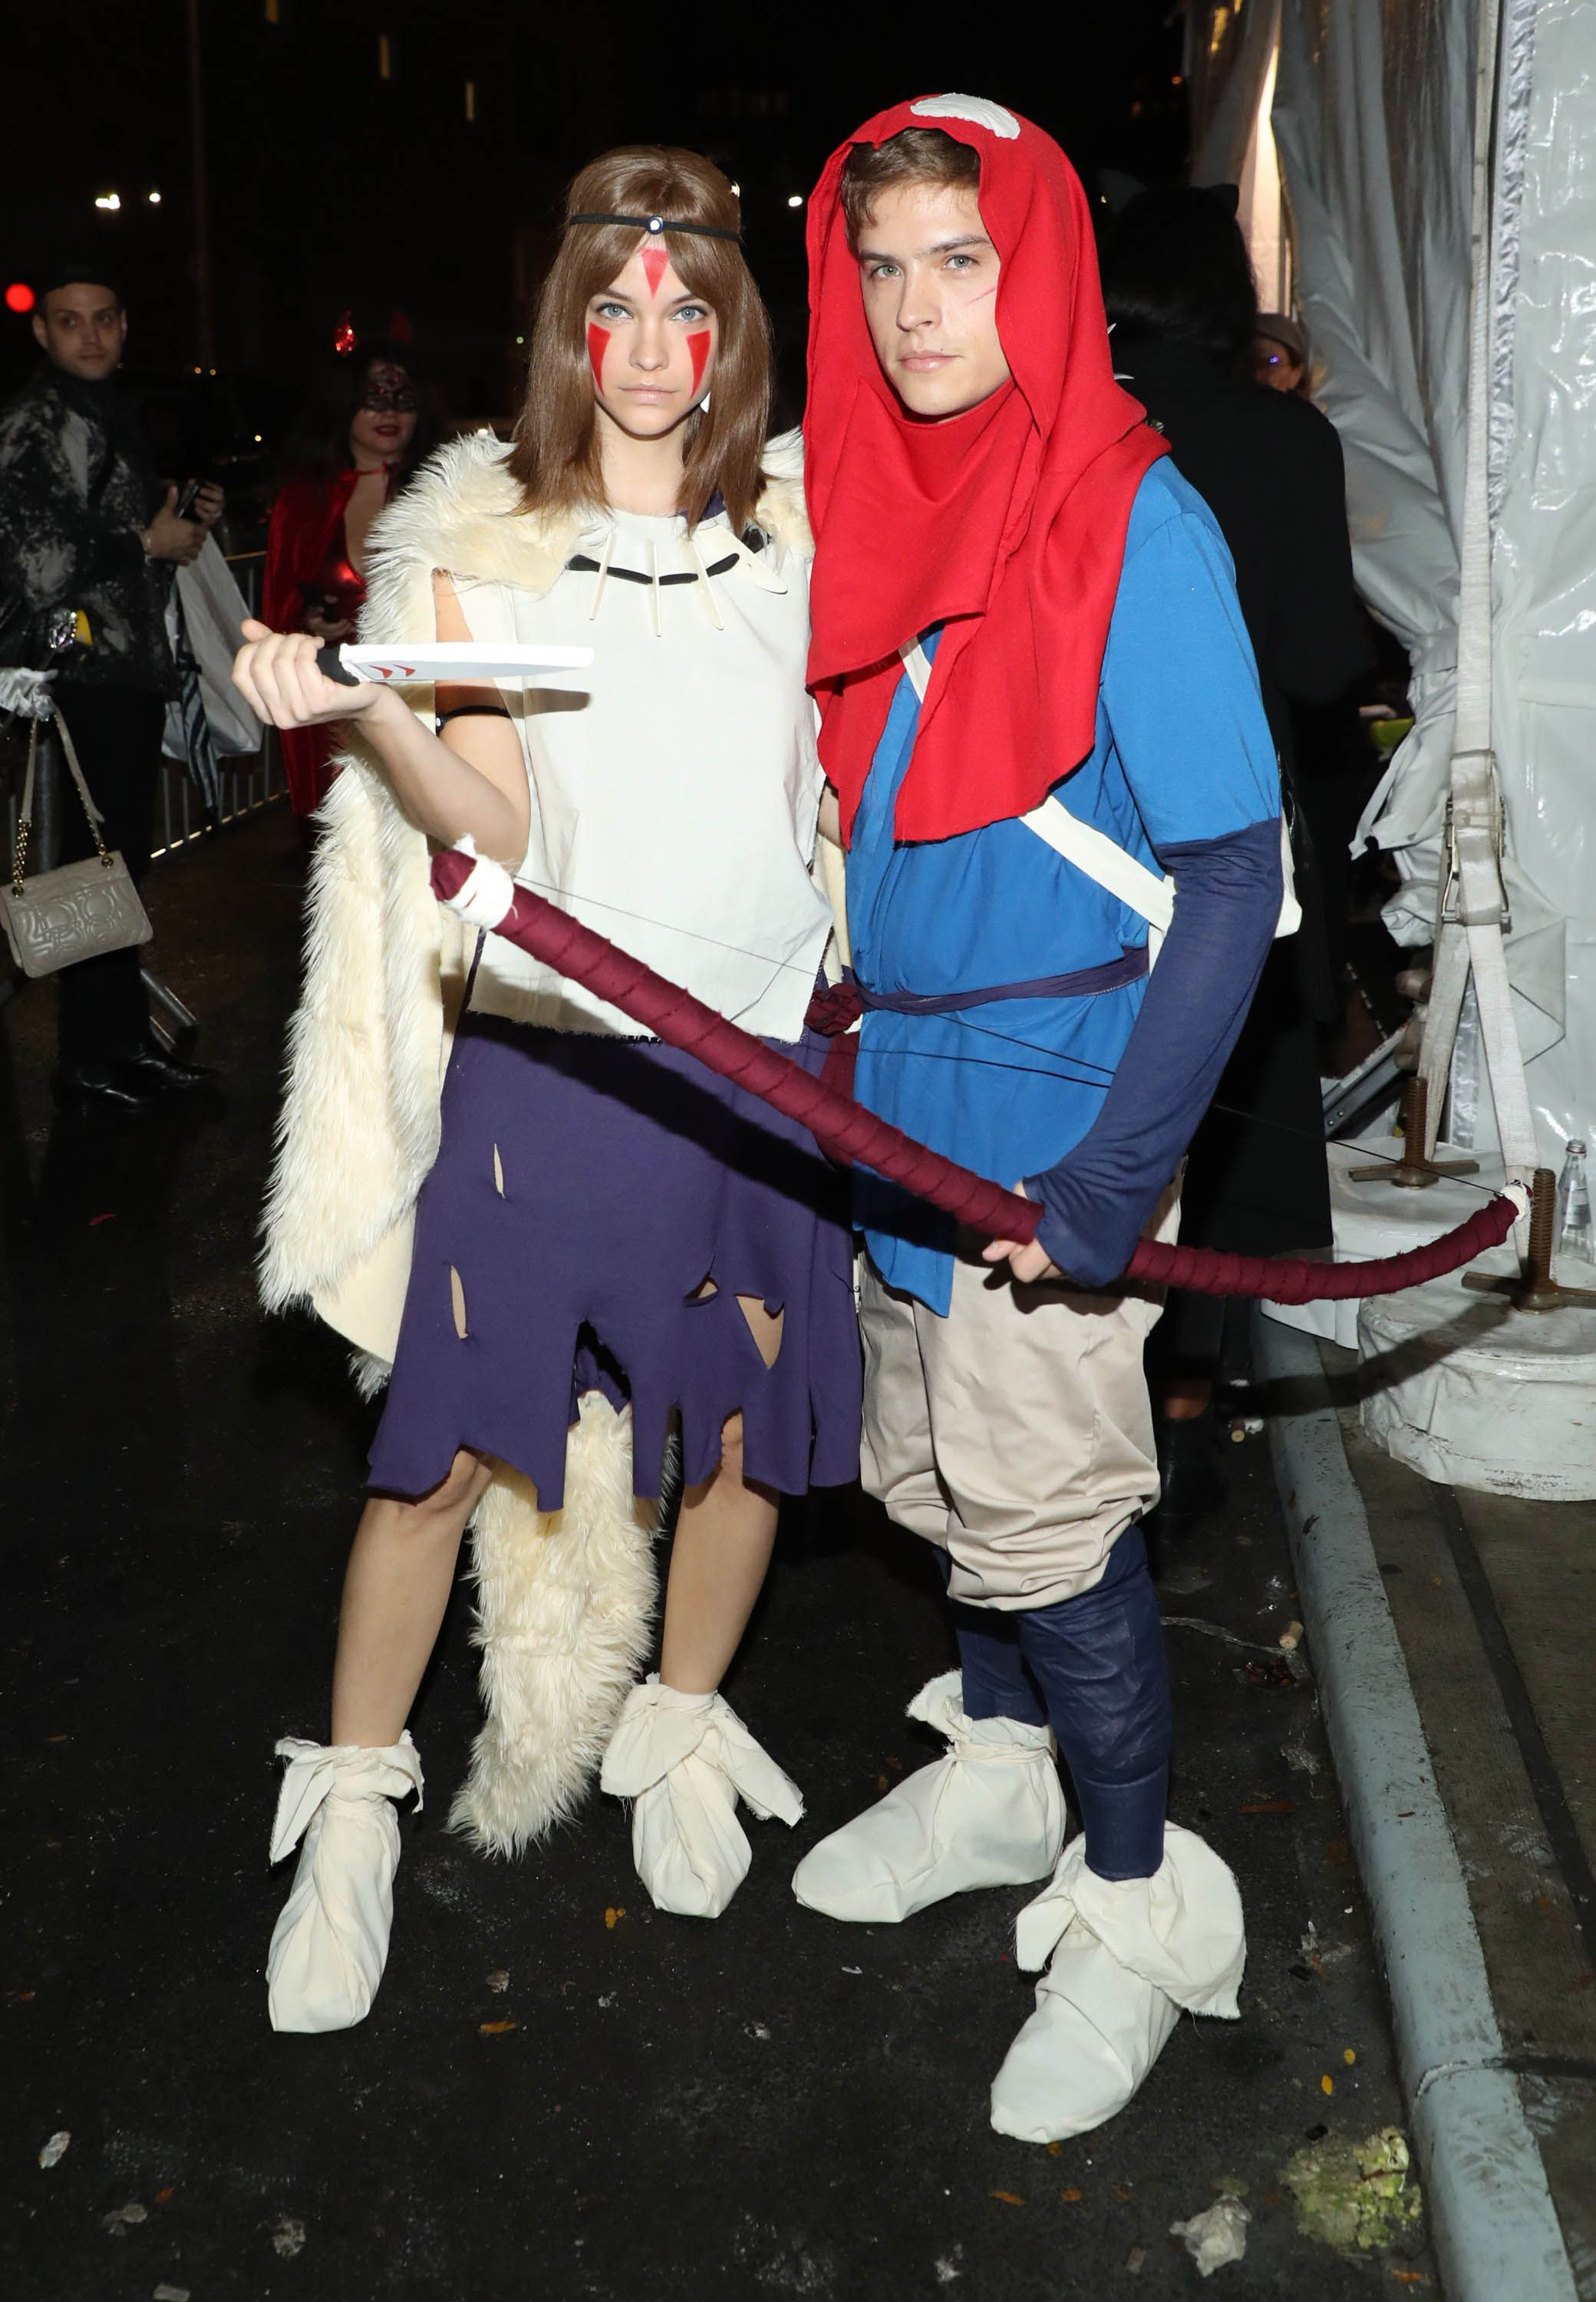 Two peas in a pod … 65 Best Couples Costumes Of Halloween 2021 Diy Couples Costume Ideas